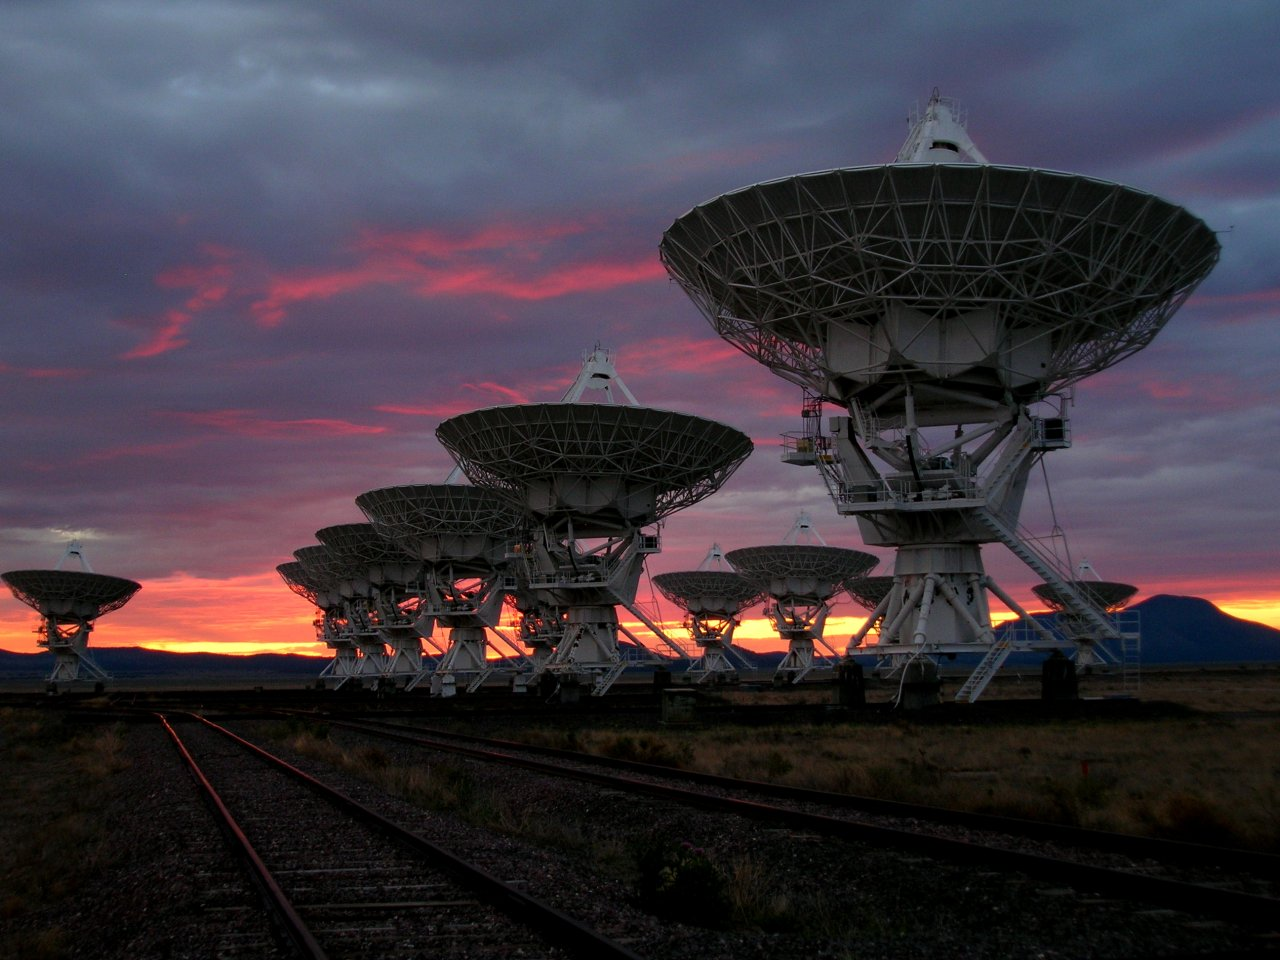 The Very Large Array (VLA) radio telescope at sunrise